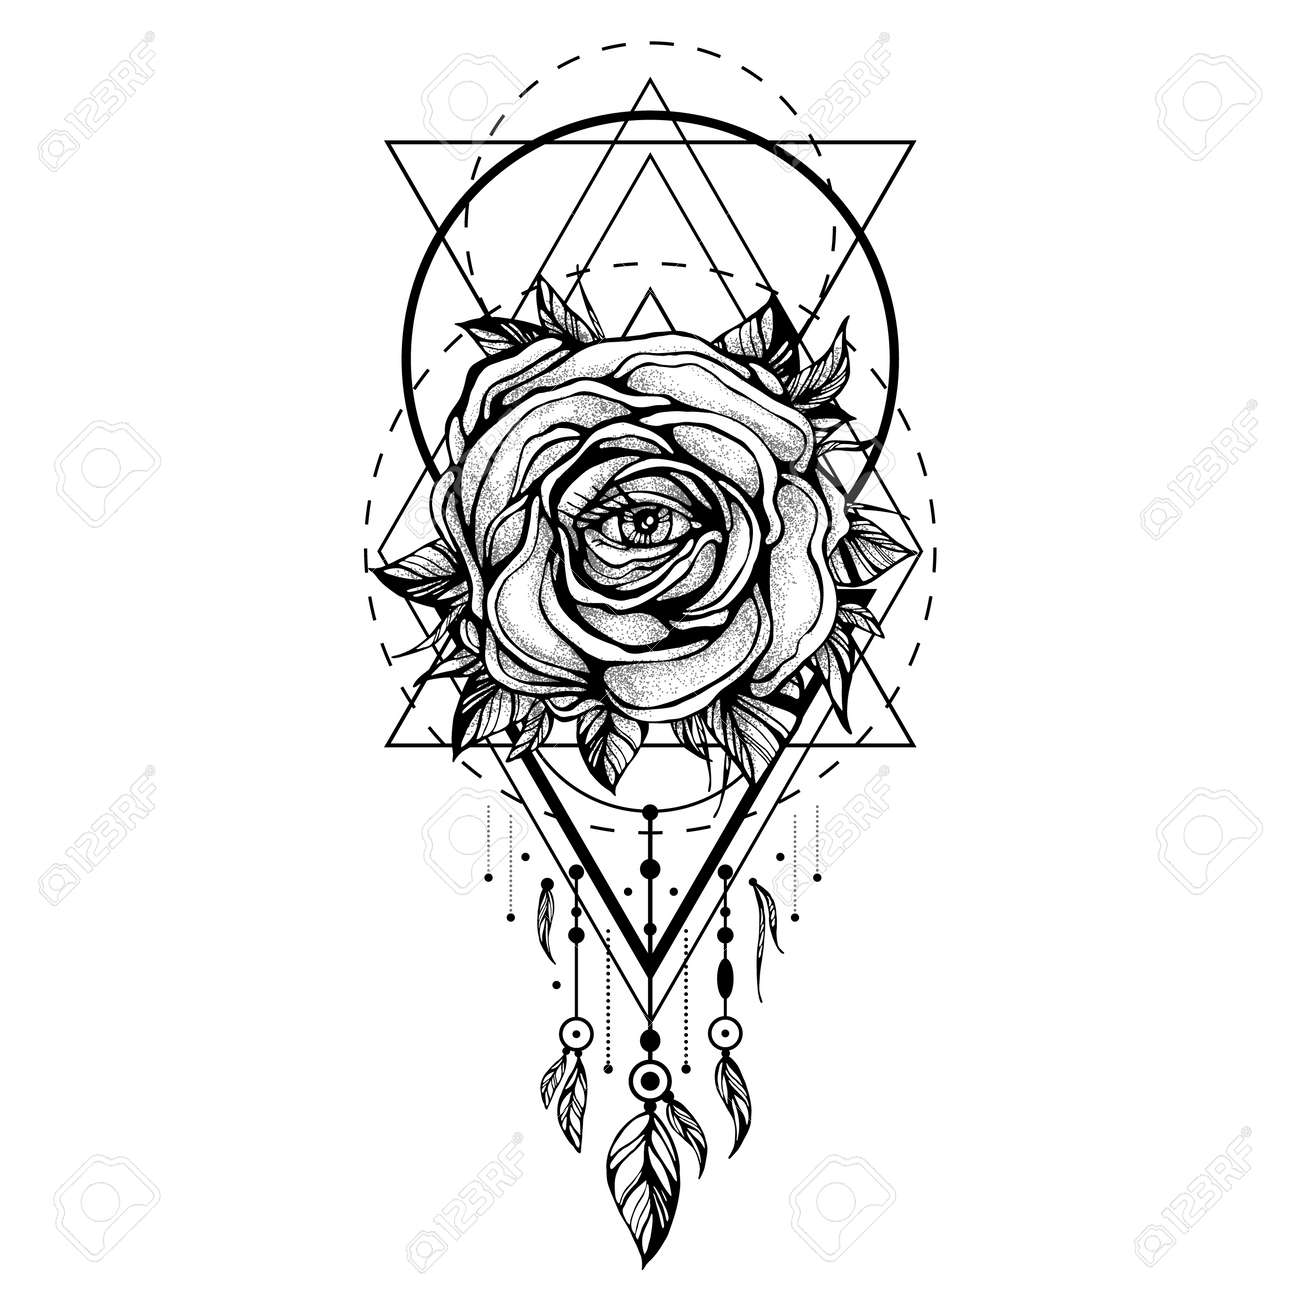 Black chaplet rose flower with the eye pattern of geometric black chaplet rose flower with the eye pattern of geometric shapes on white backdrop ccuart Images